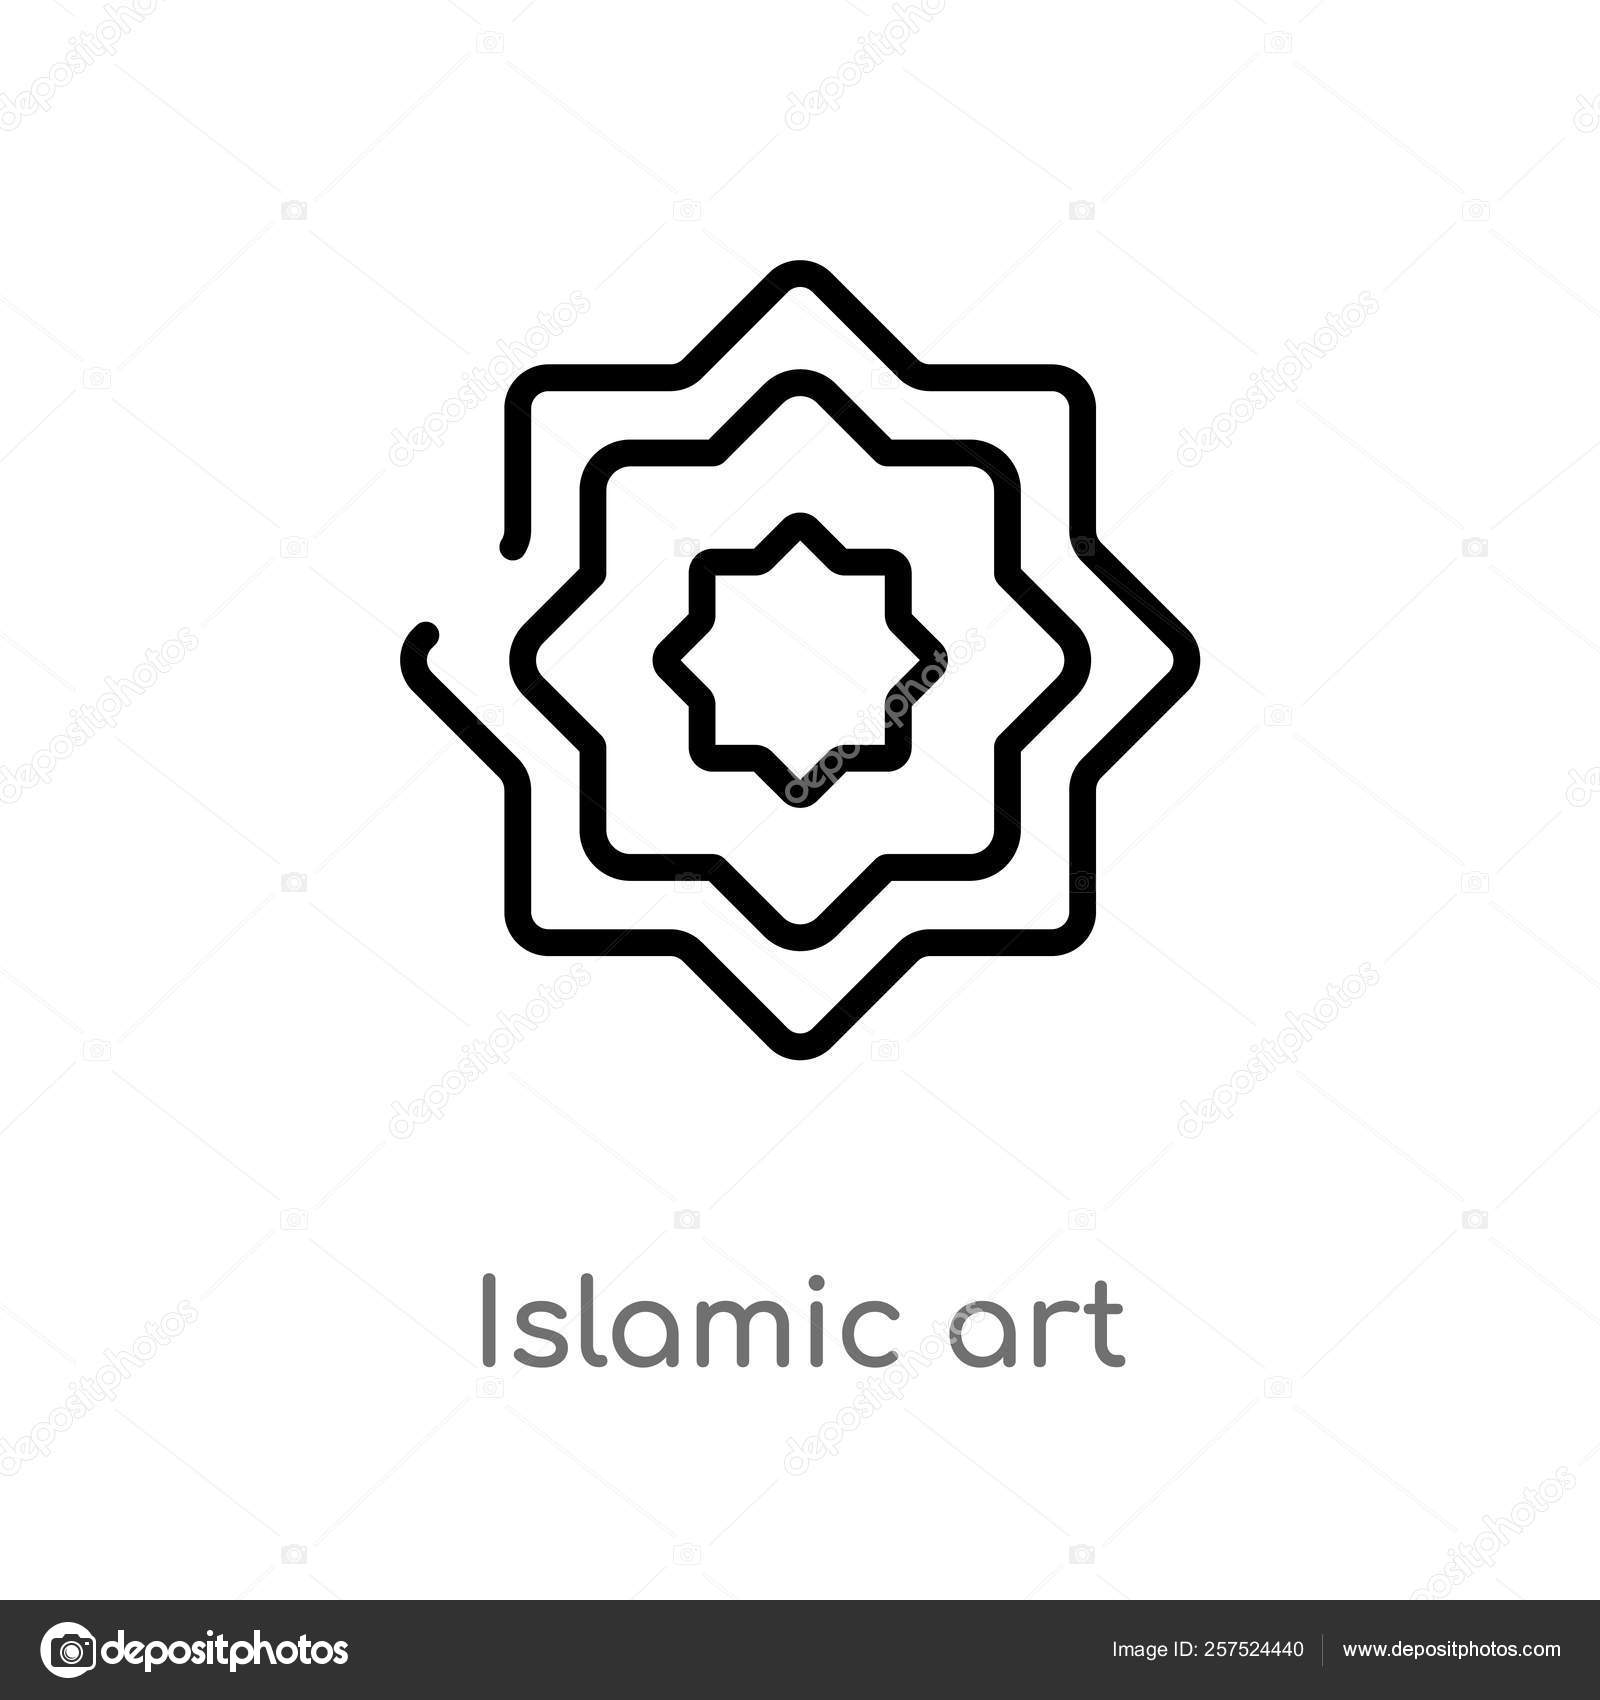 Outline Islamic Art Vector Icon Isolated Black Simple Line